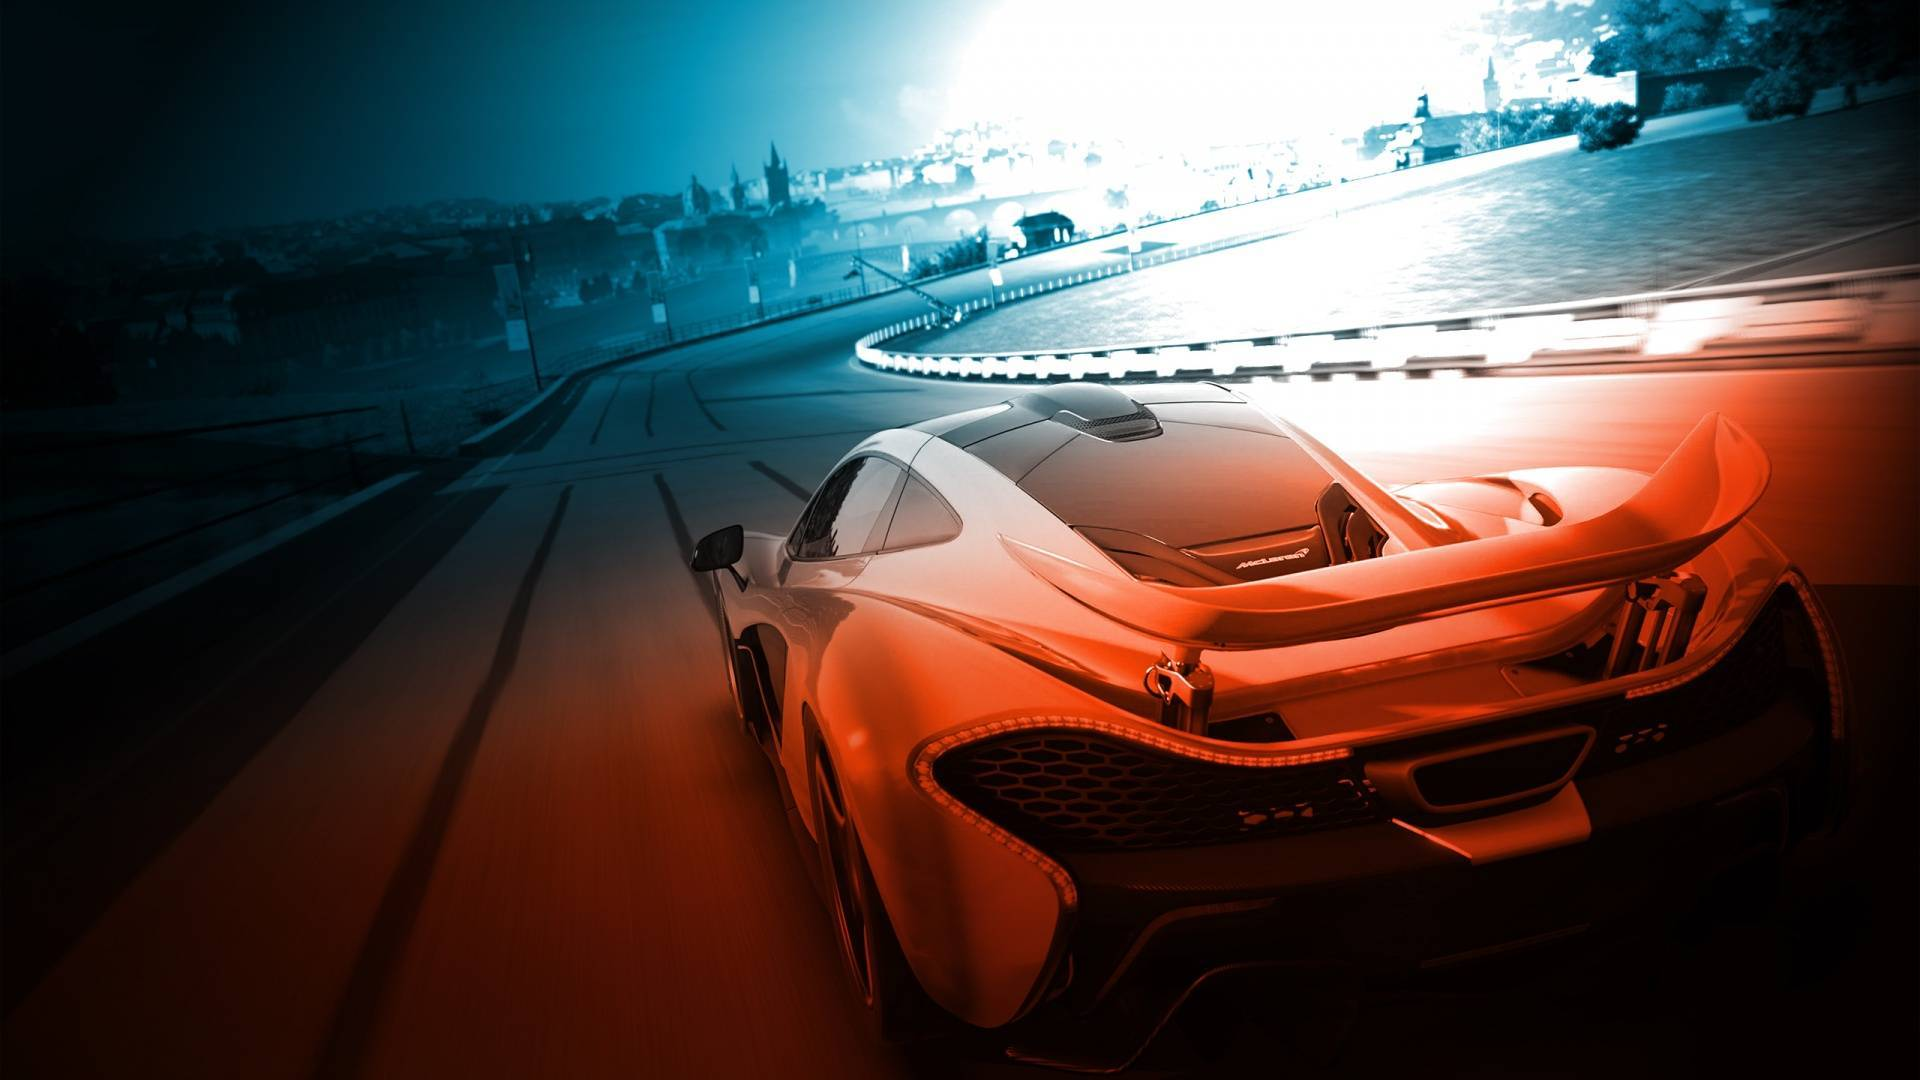 Cool Car Wallpapers